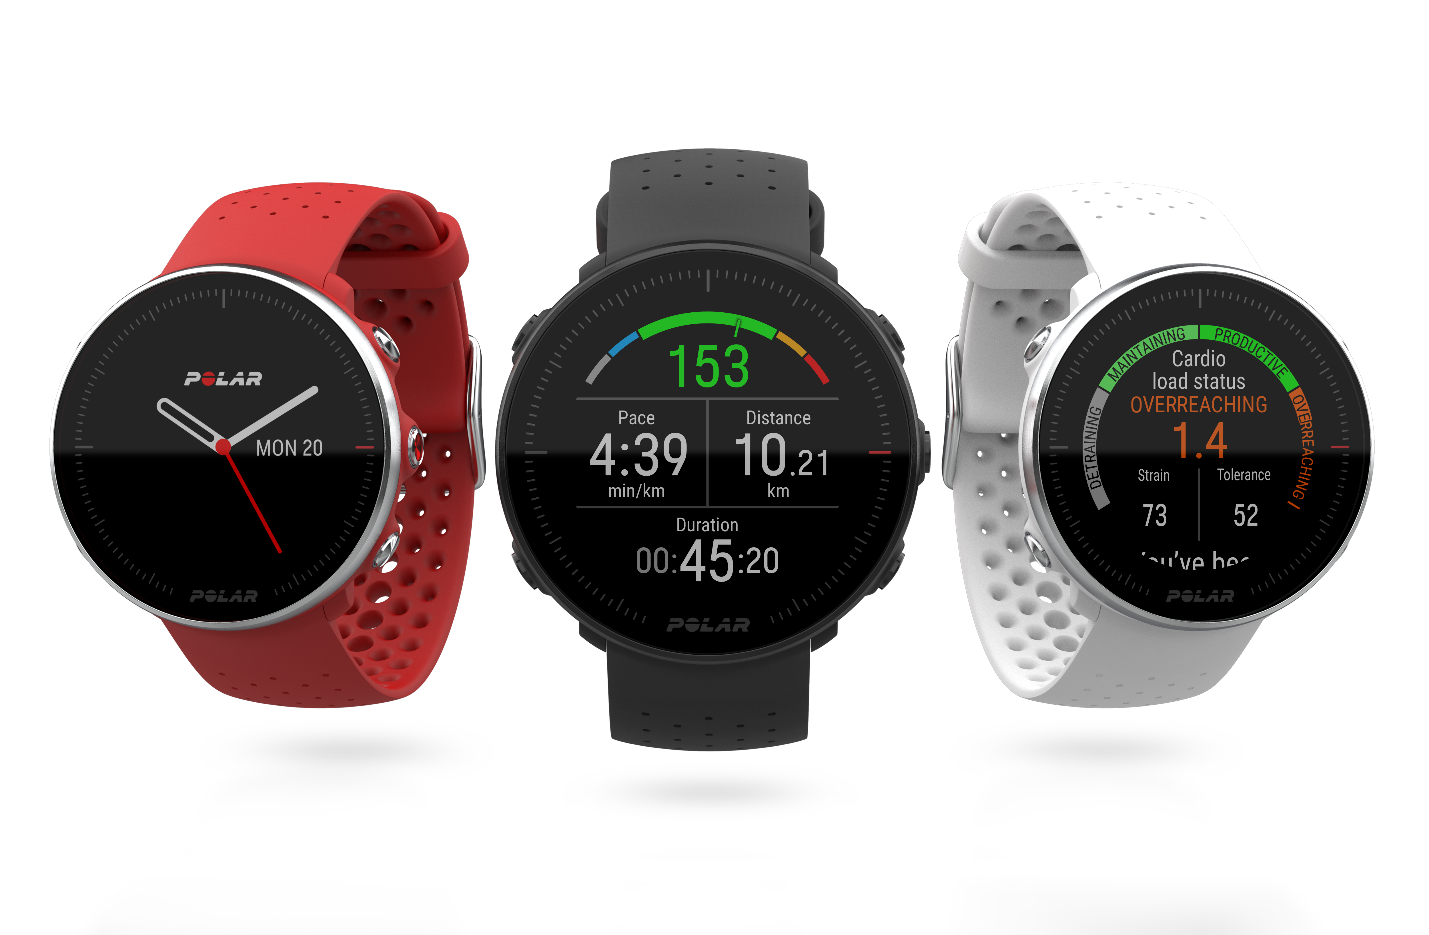 Polar Introduces Polar Vantage M, an All-in-One Sport Watch with Advanced Heart Rate for Goal-Oriented Athletes